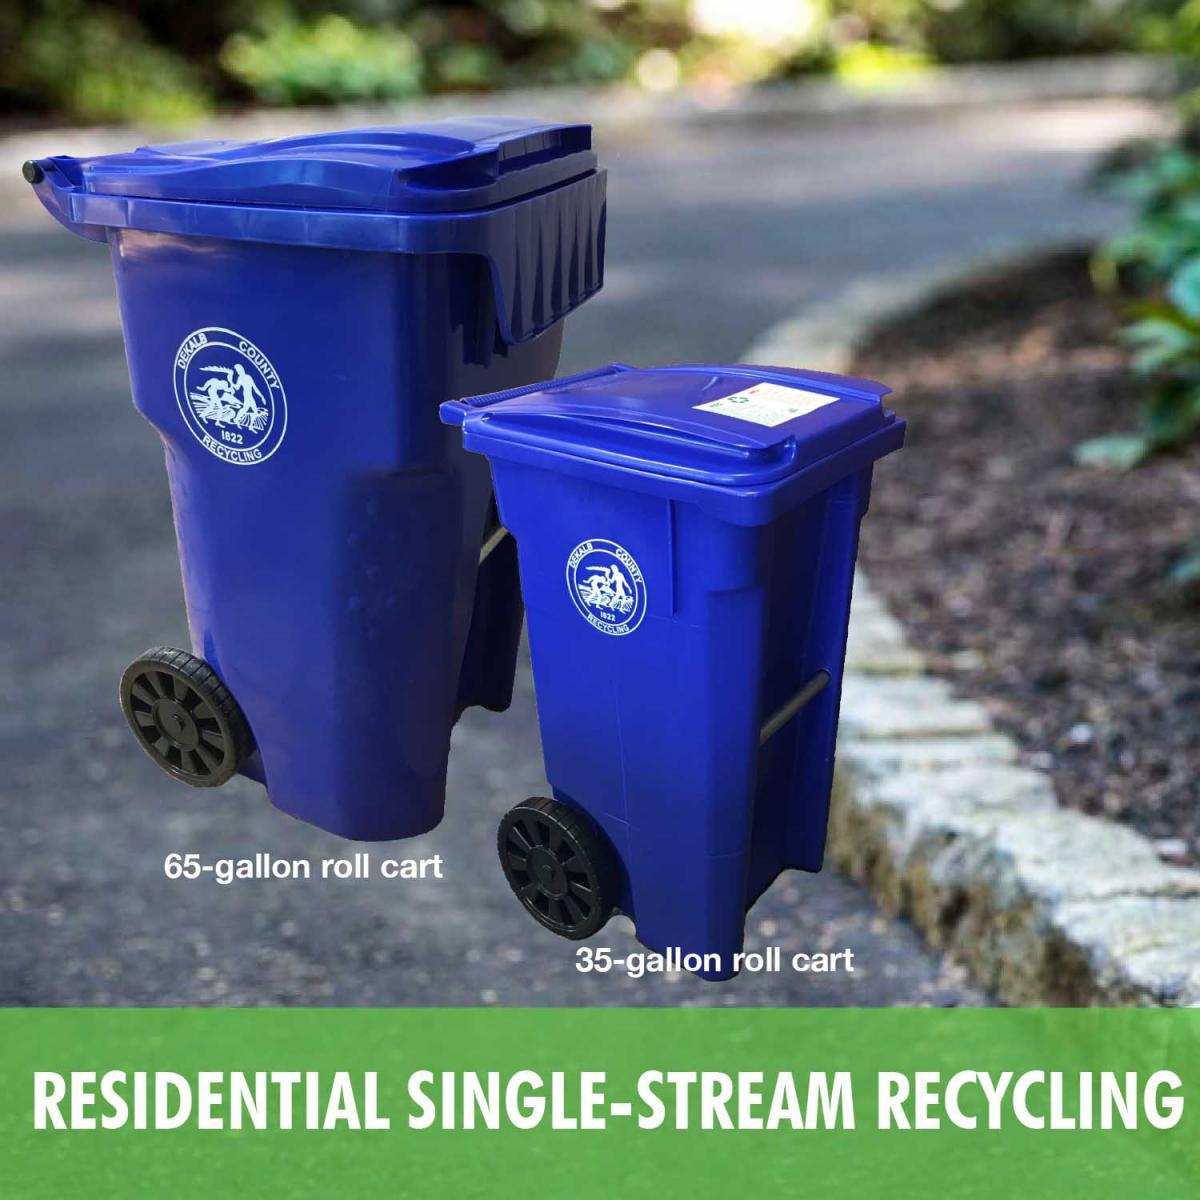 Residential Single-Stream Recycling Program